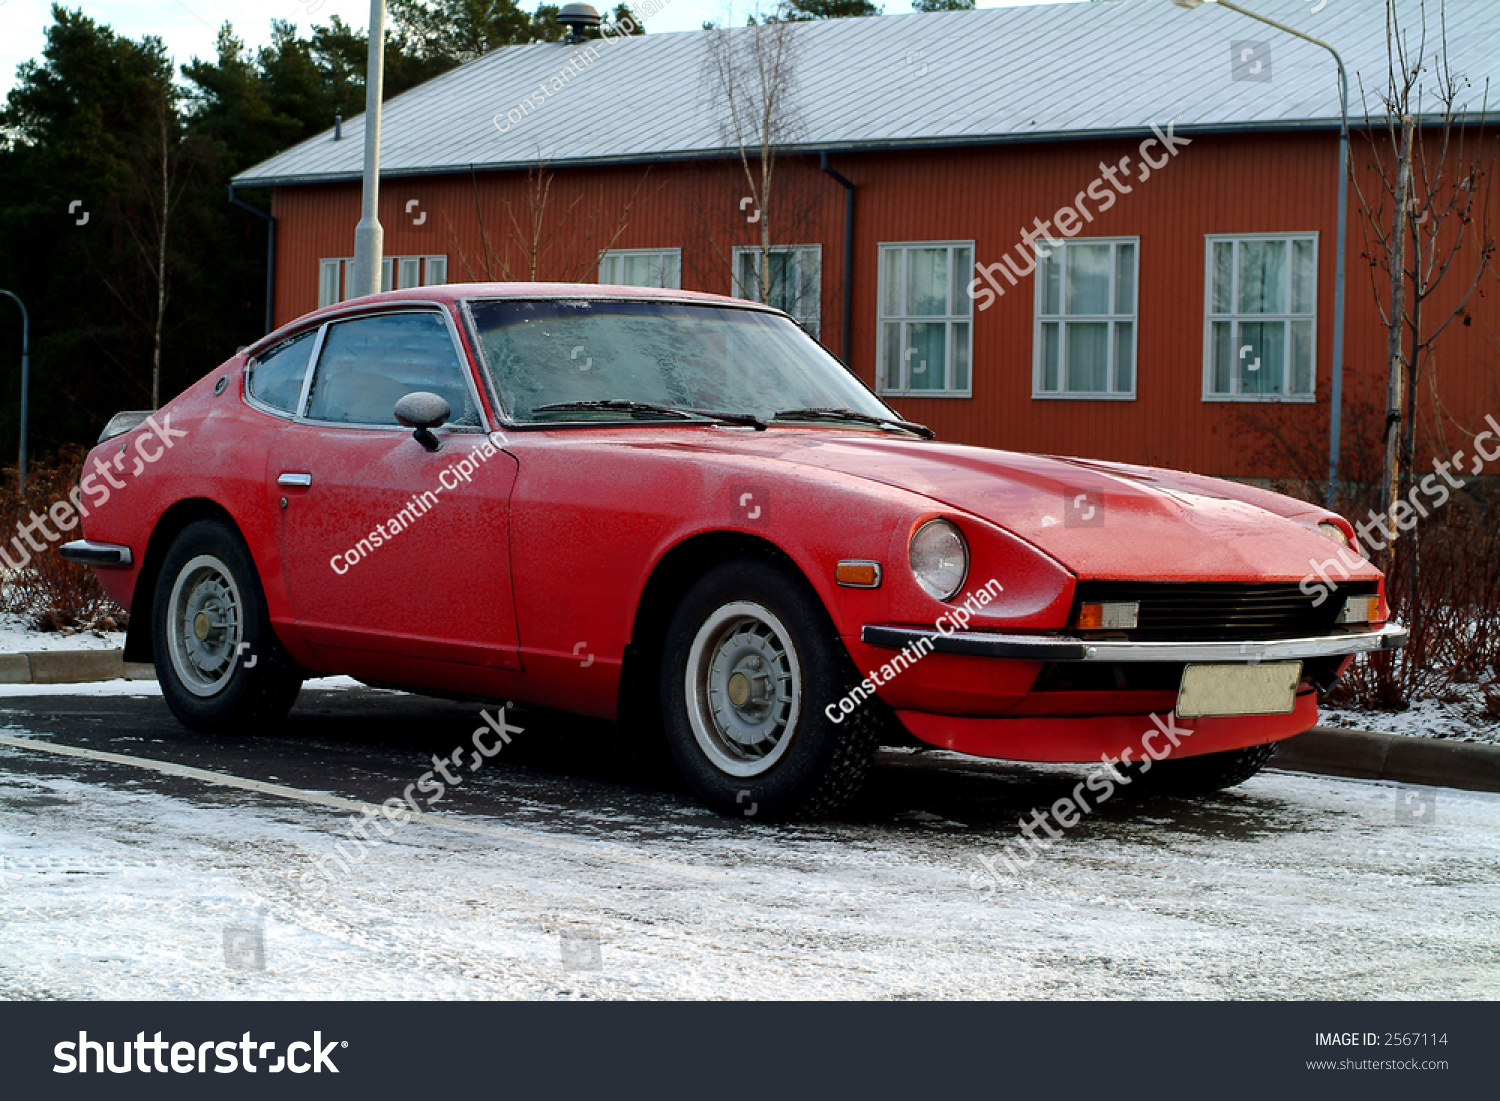 red car datsun in winter side view stock photo 2567114. Black Bedroom Furniture Sets. Home Design Ideas